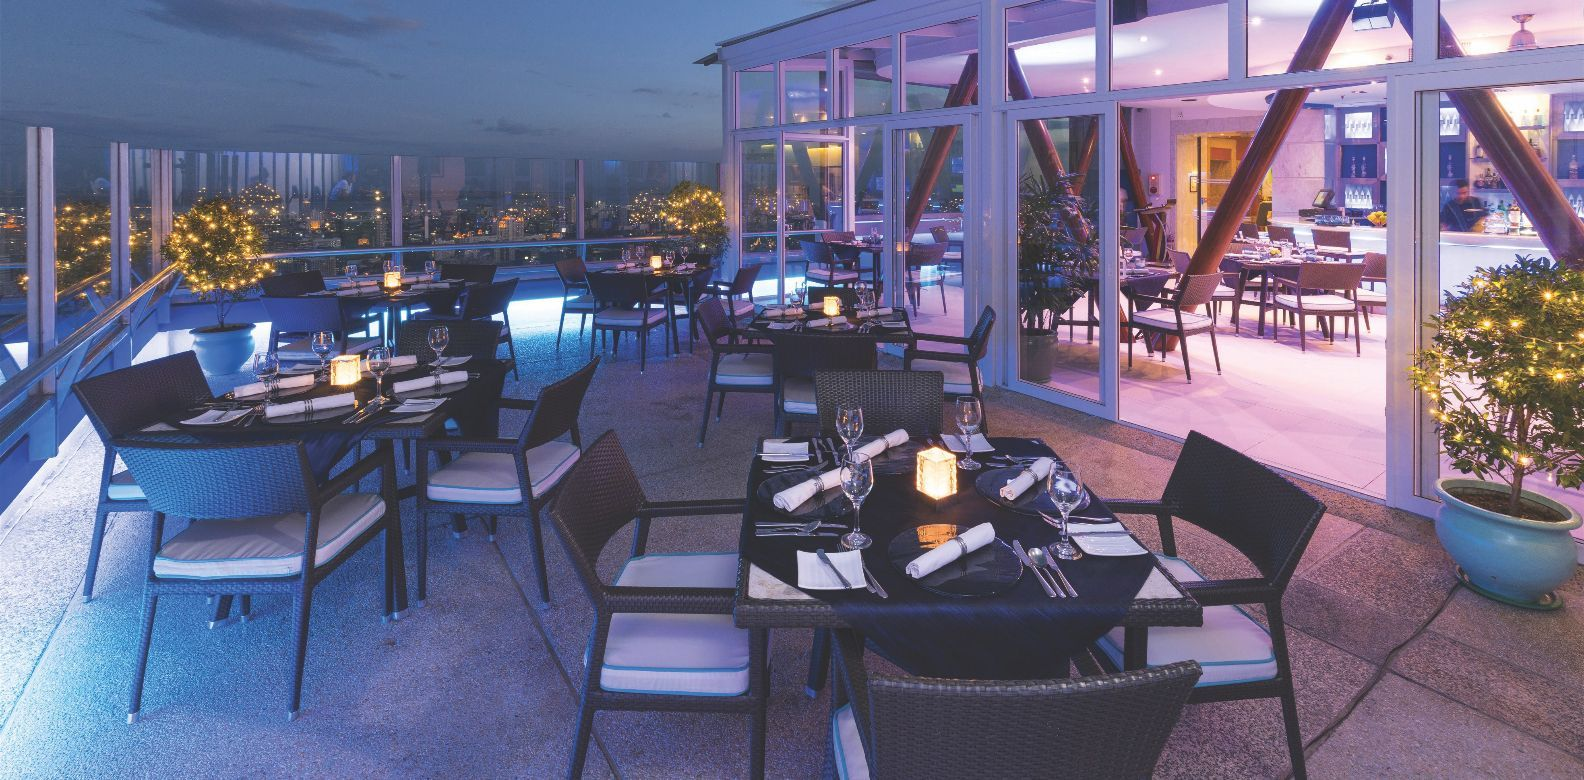 Dine With Friends In These Topnotch Chill Out Spots